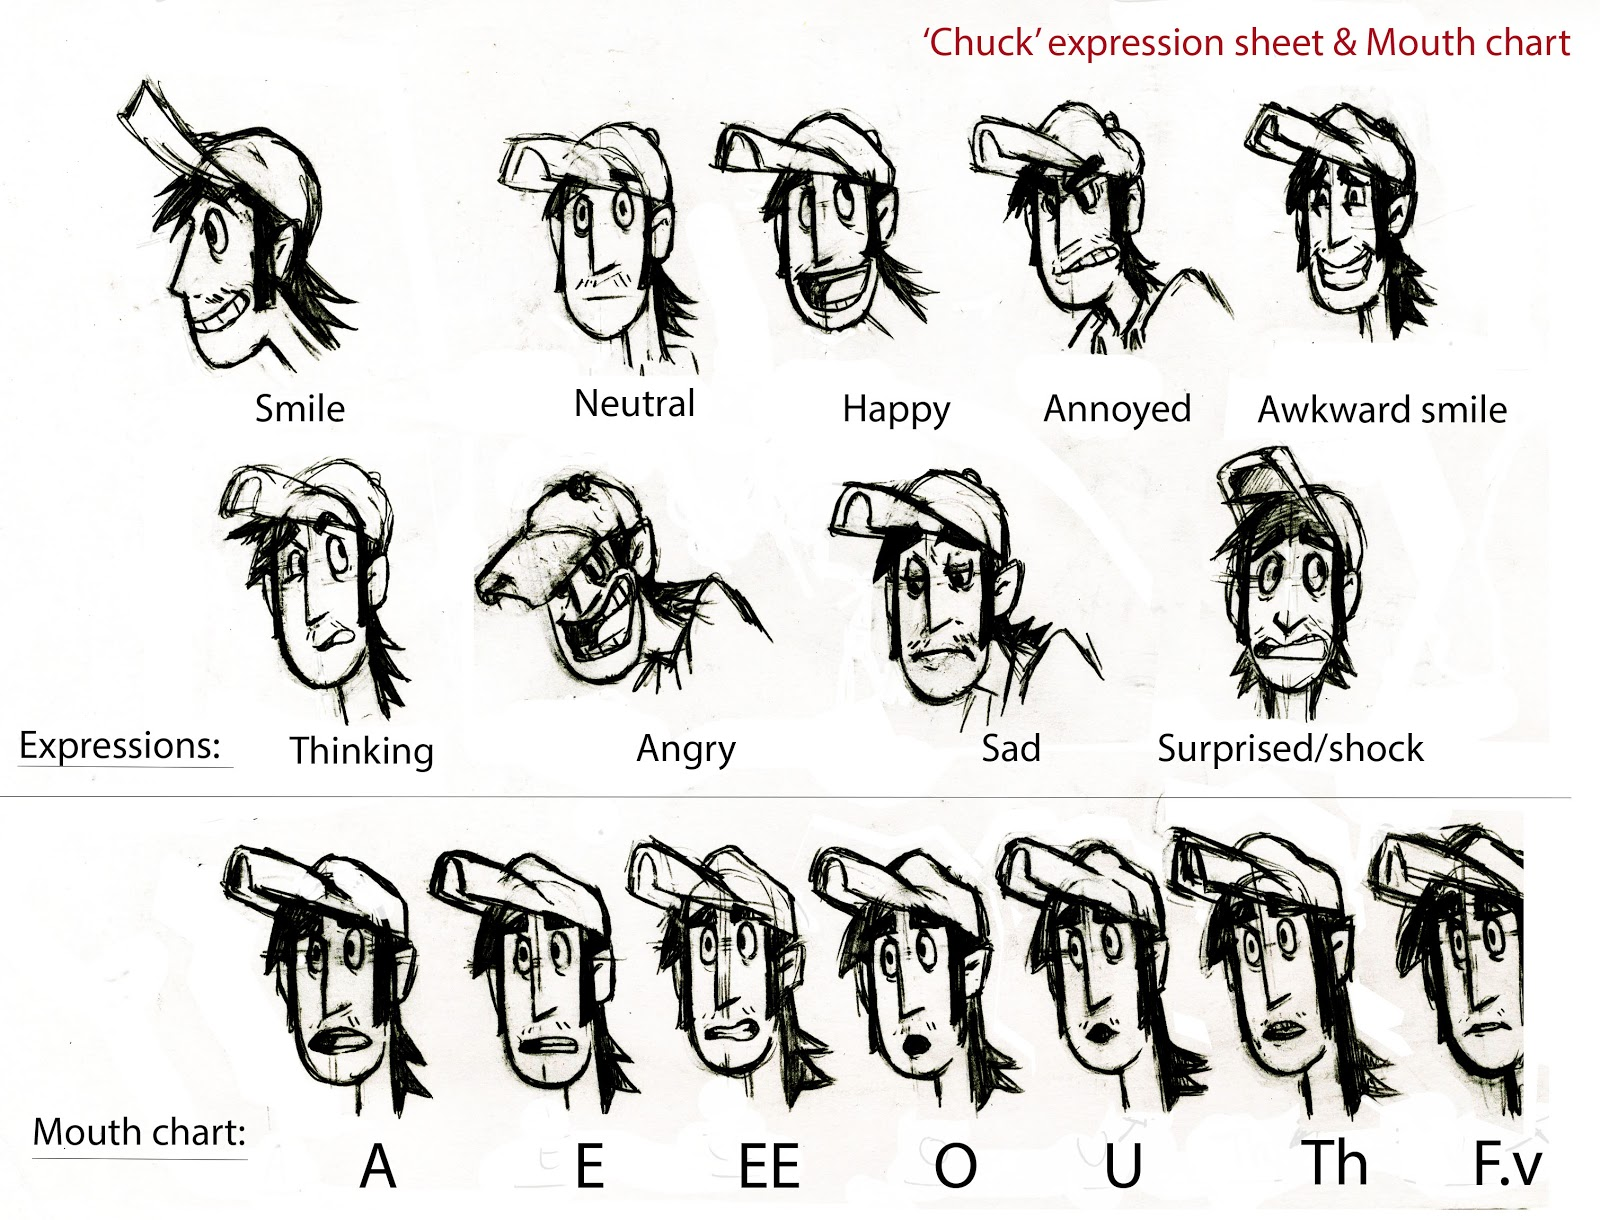 Character Design Expression Chart : Research and development level mart thomas gamble